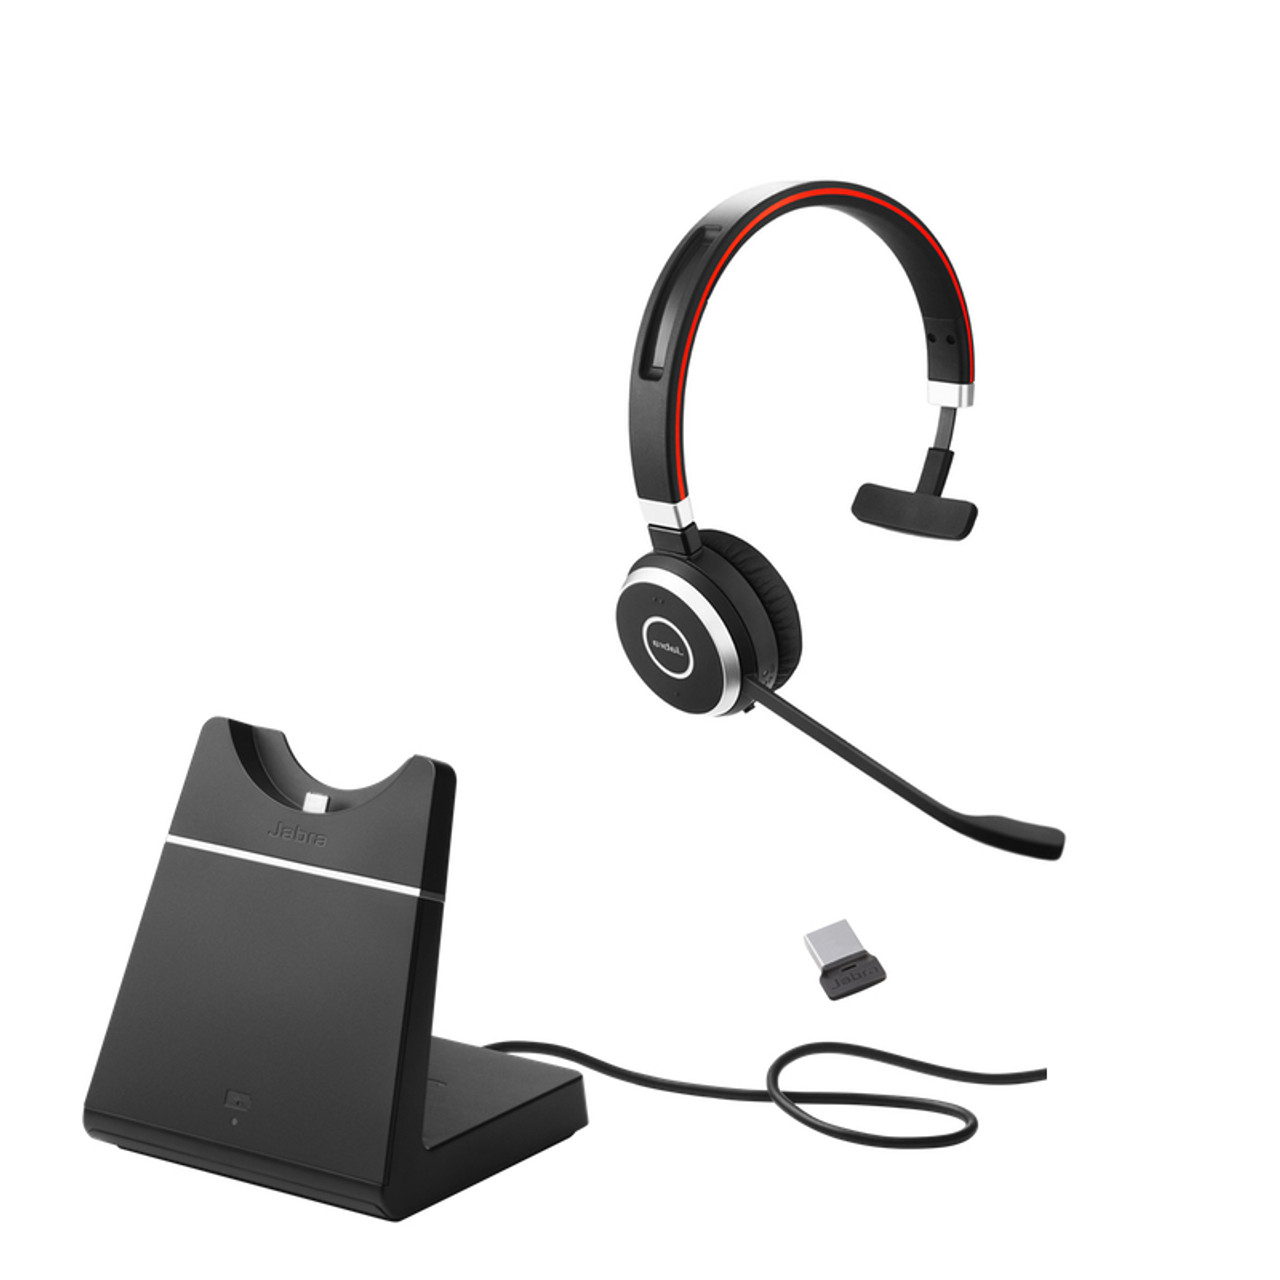 Jabra Evolve 65 Bluetooth Mono Headset Bundle With Charging Dock Uc Version Bonus Wall Charger Usb Dongle And Charging Stand 6593 823 499